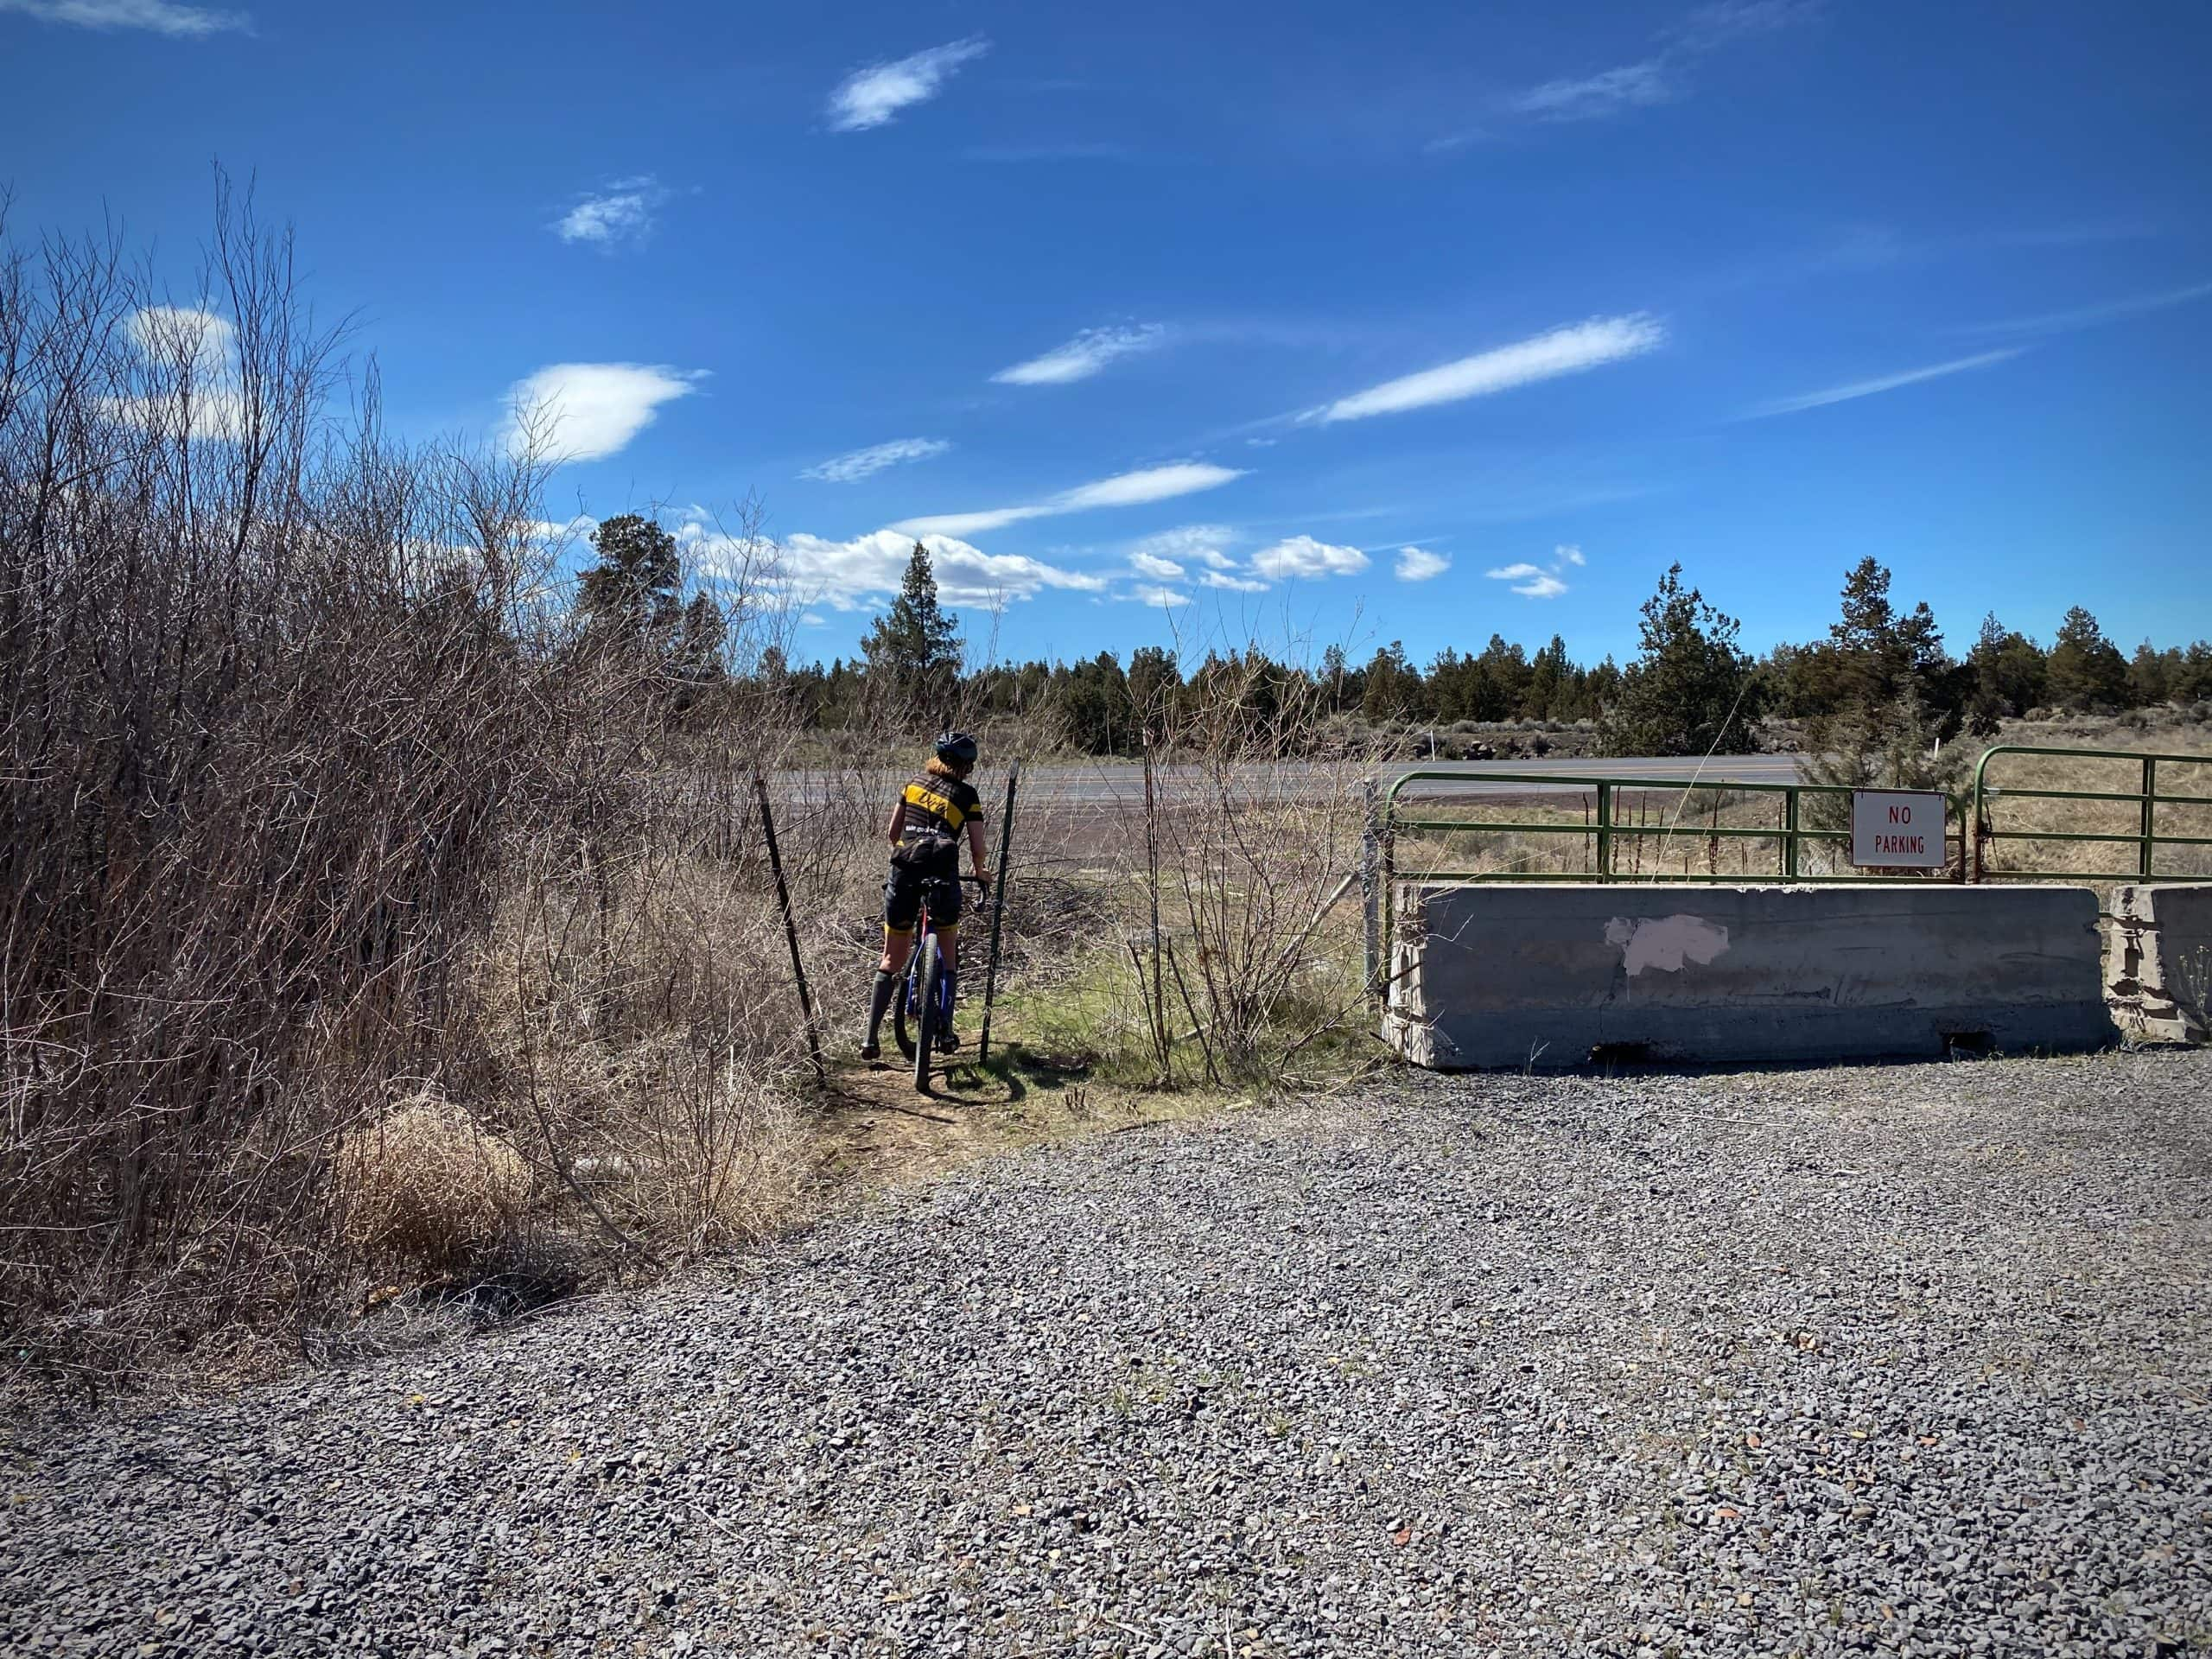 Cyclist crossing through gate between Culver highway and the Crooked River (High) bridge.